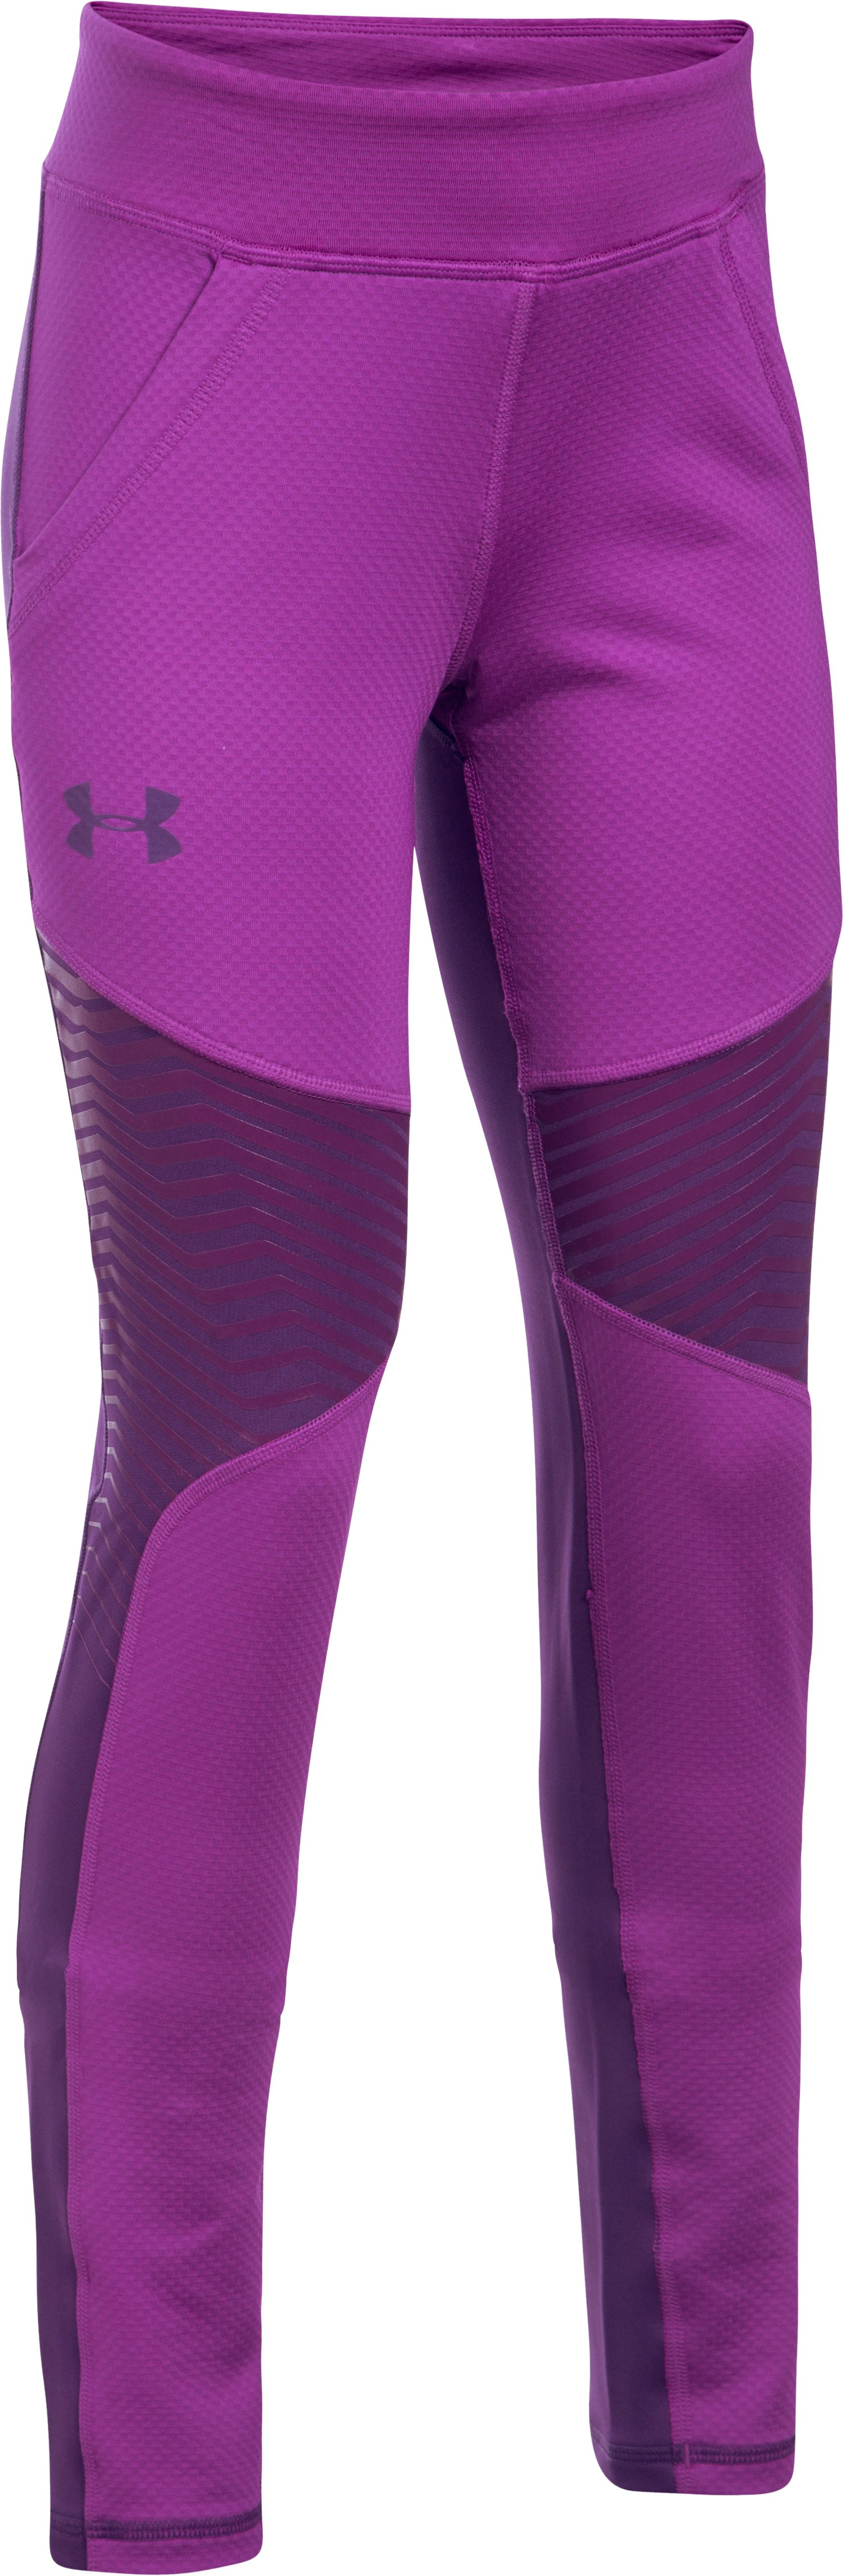 Girls' ColdGear® Reactor Leggings, PURPLE RAVE